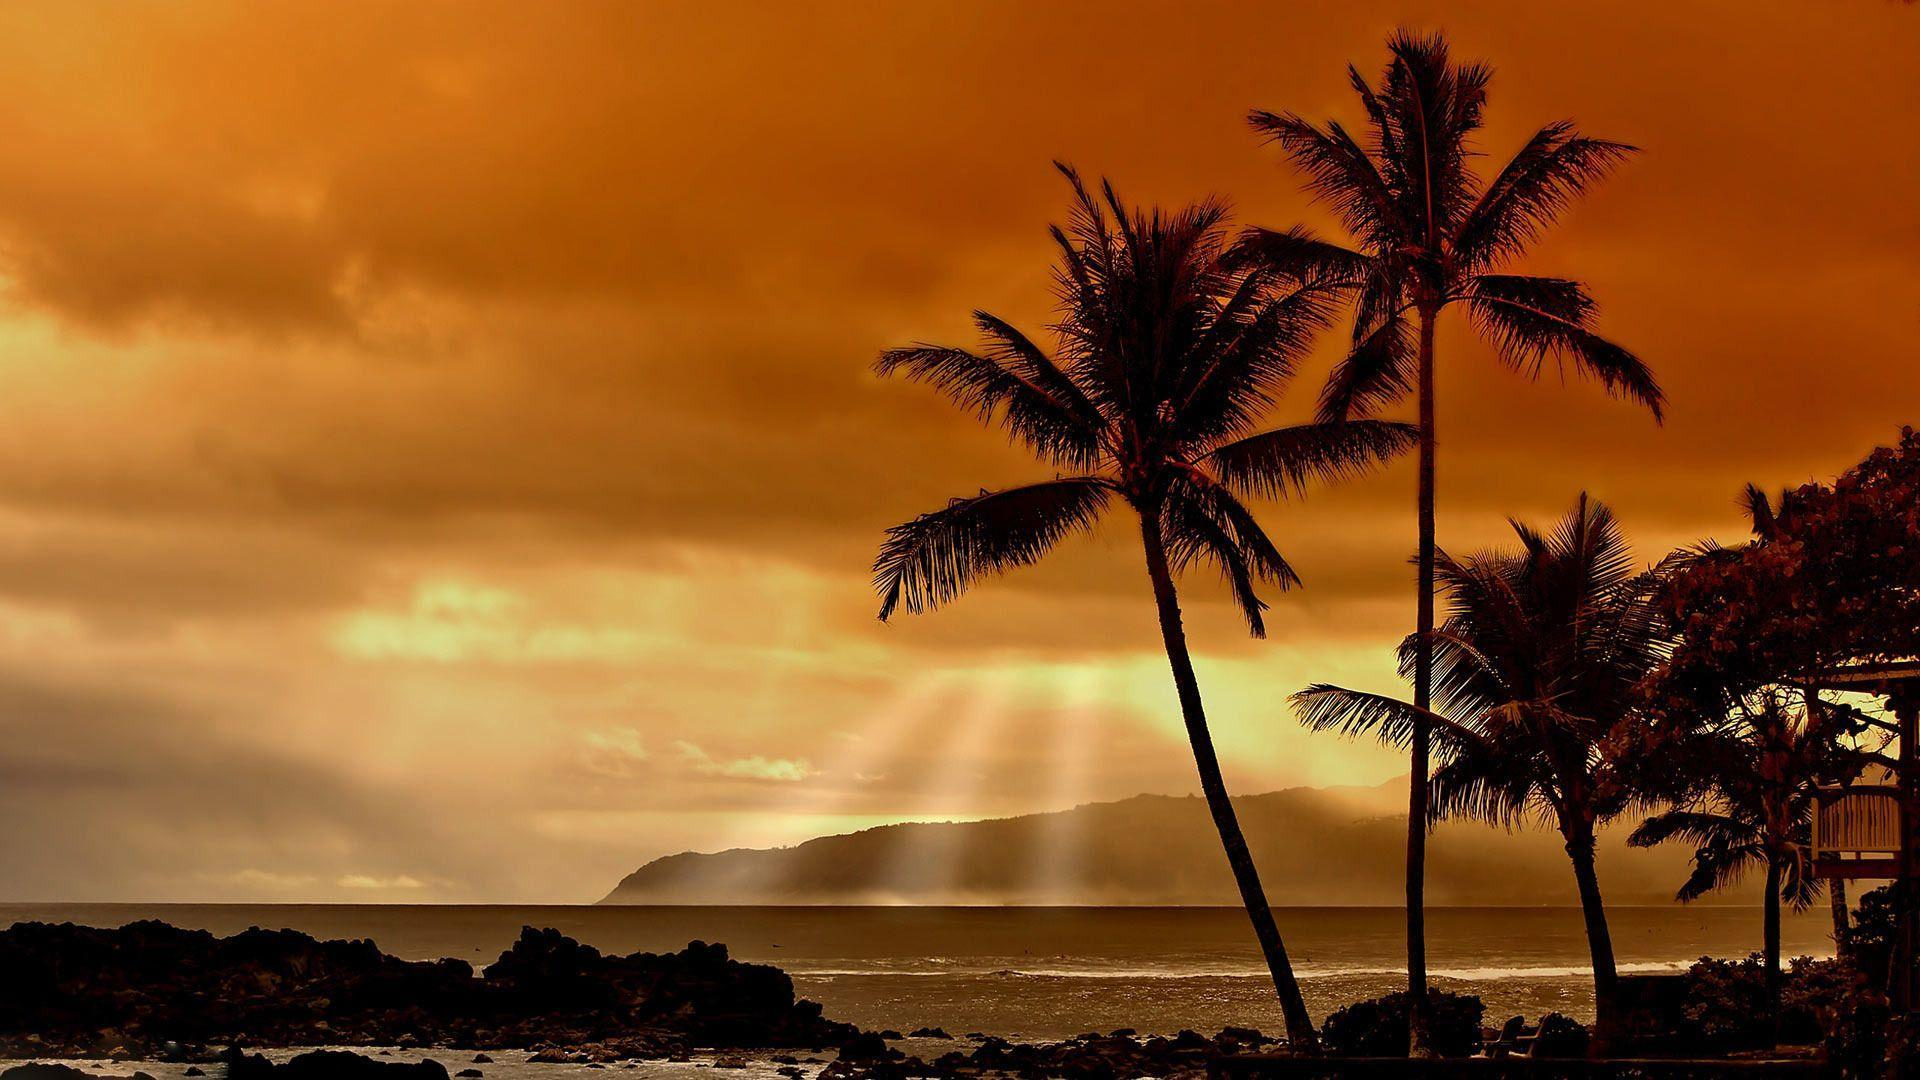 Hawaii Sunset Wallpaper - WallpaperSafari